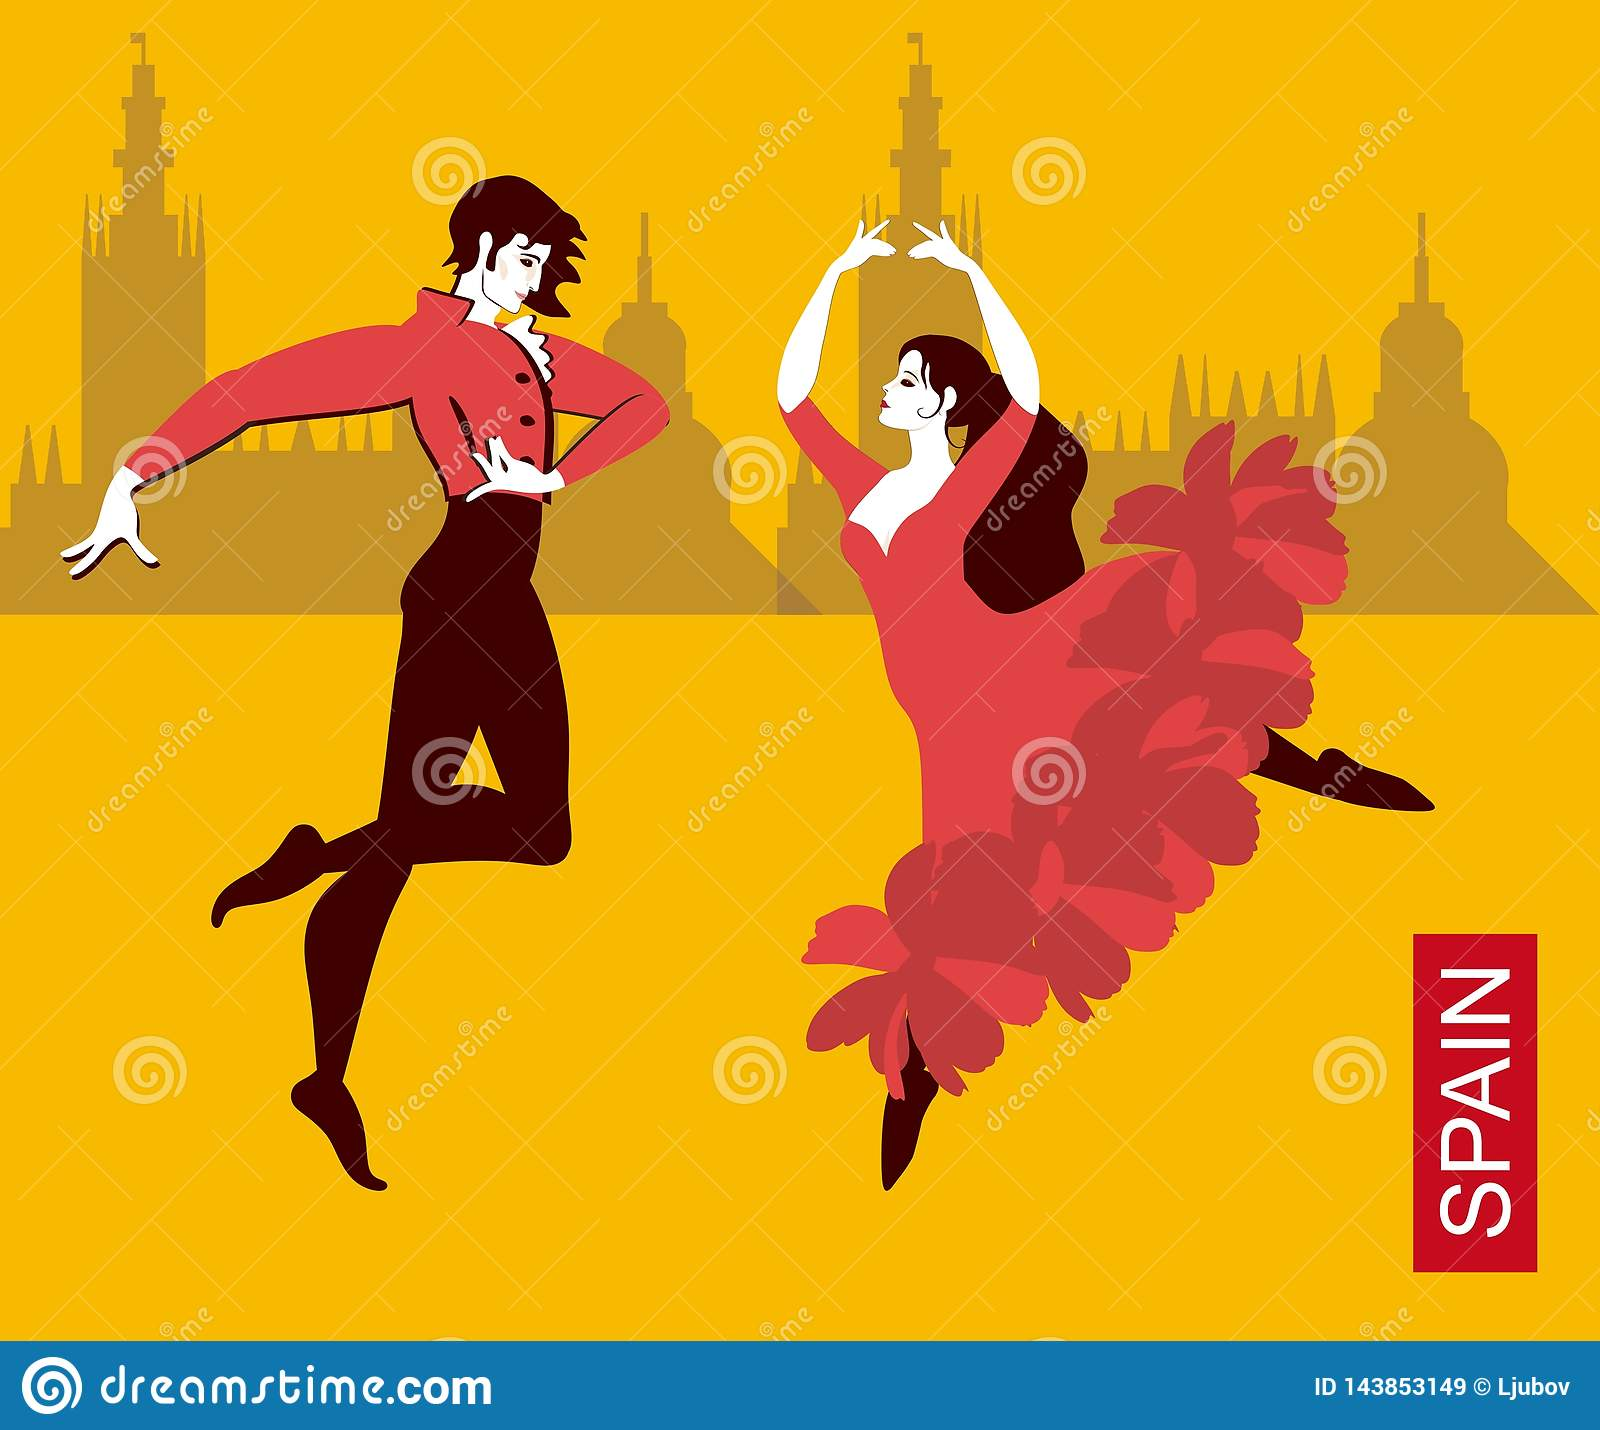 Beautiful Spanish Couple In National Costumes Dancing Flamenco In The City  Streets. Silhouettes Of Buildings